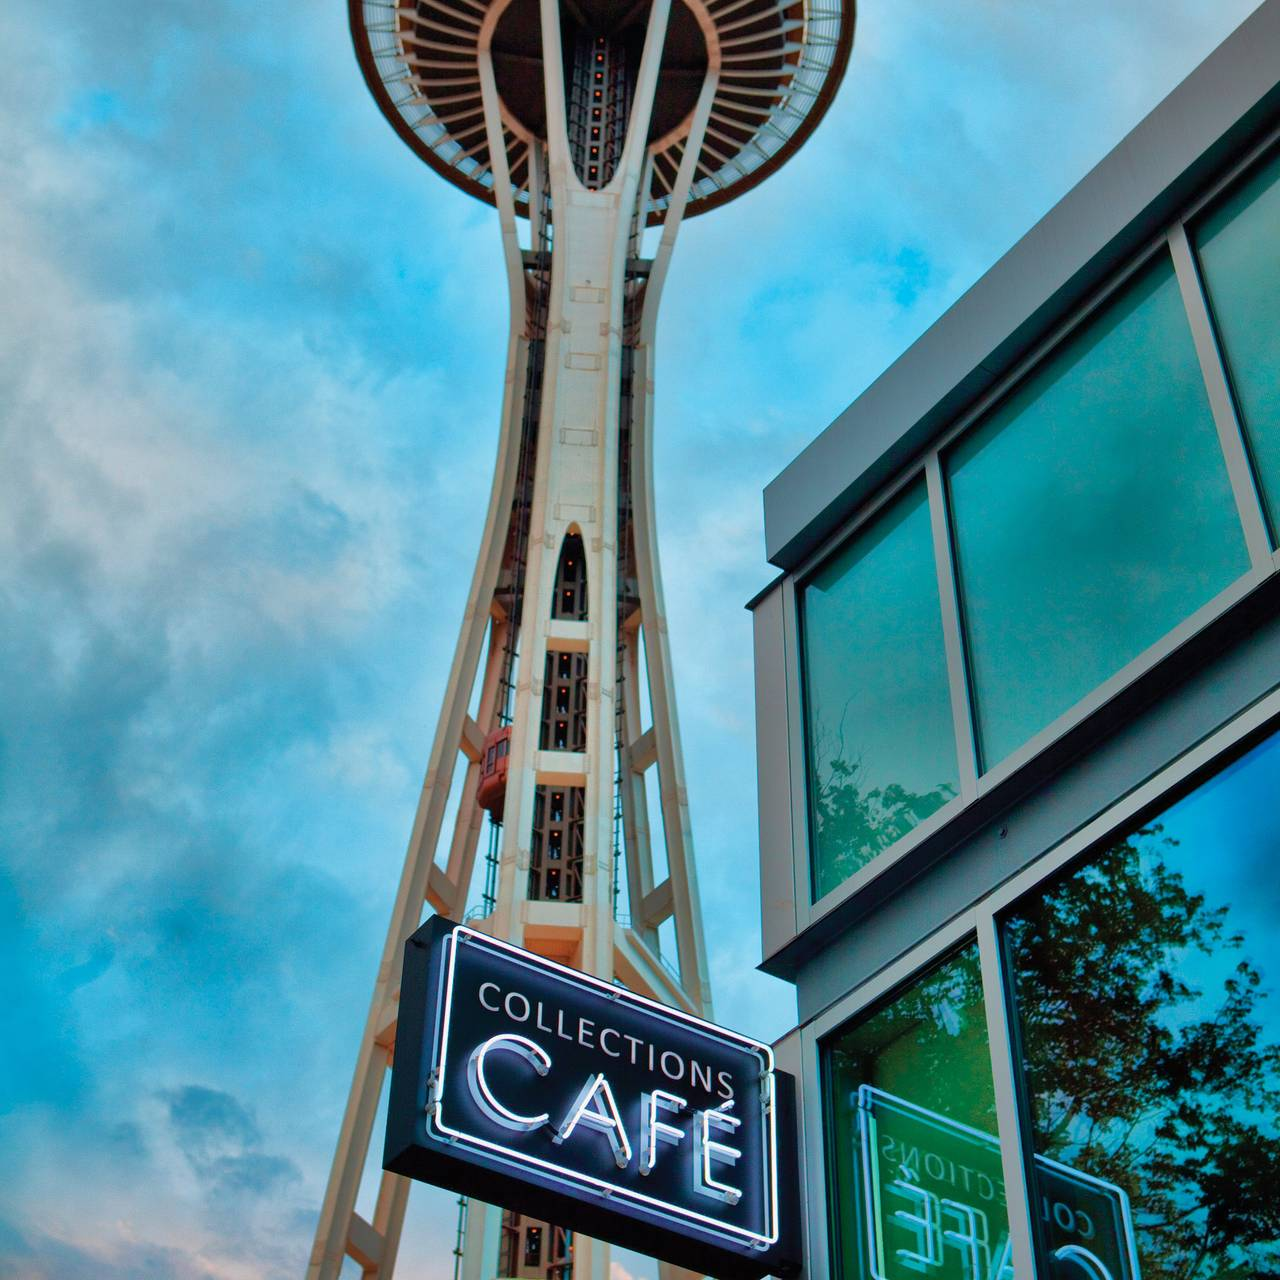 Collections Cafe Restaurant - Seattle, WA | OpenTable